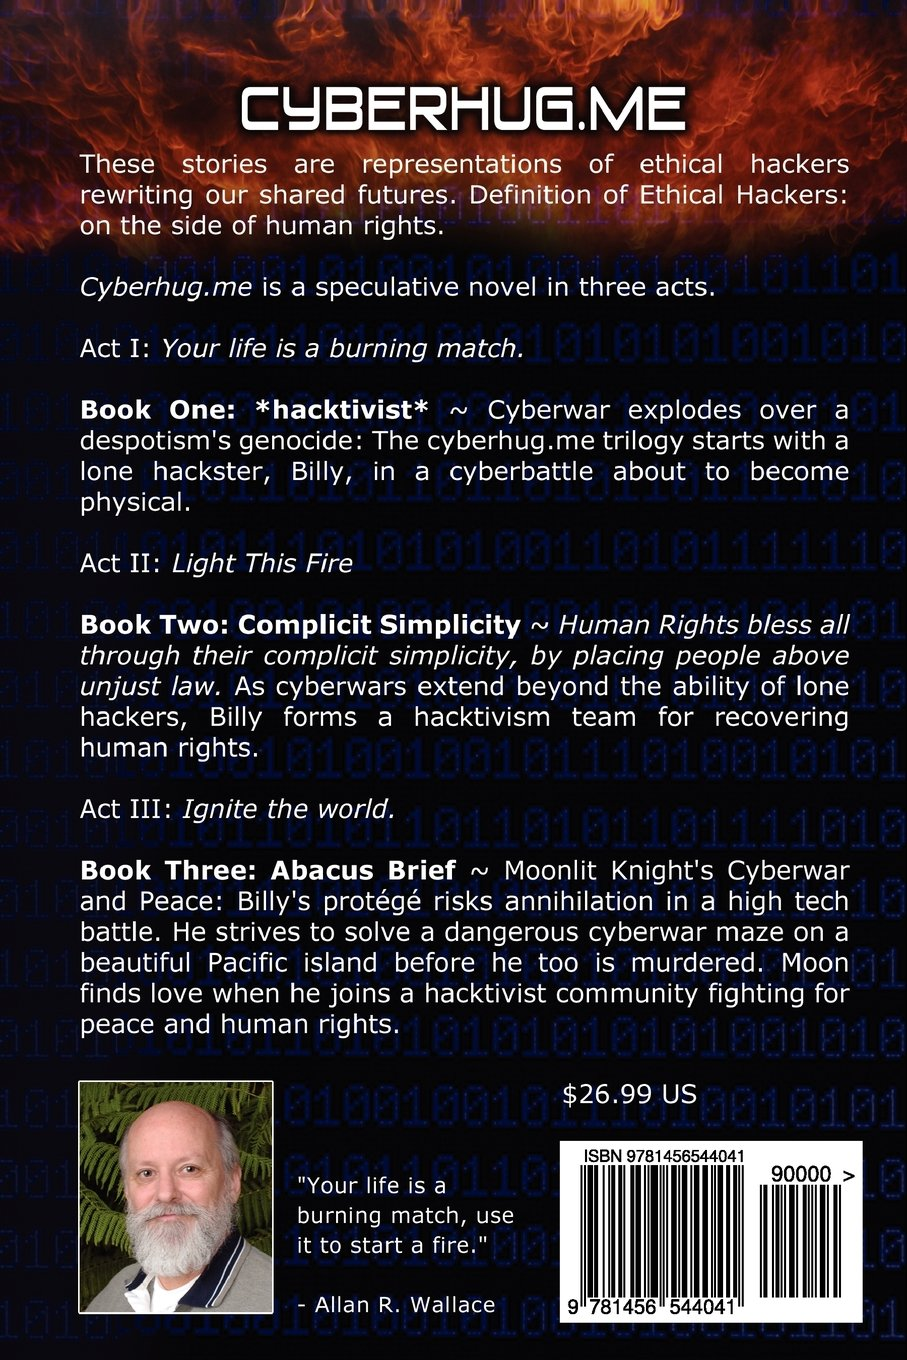 cyberhug.me · Hacktivism, Speculative Fiction Stories, Collection of Books 3, 4, 5